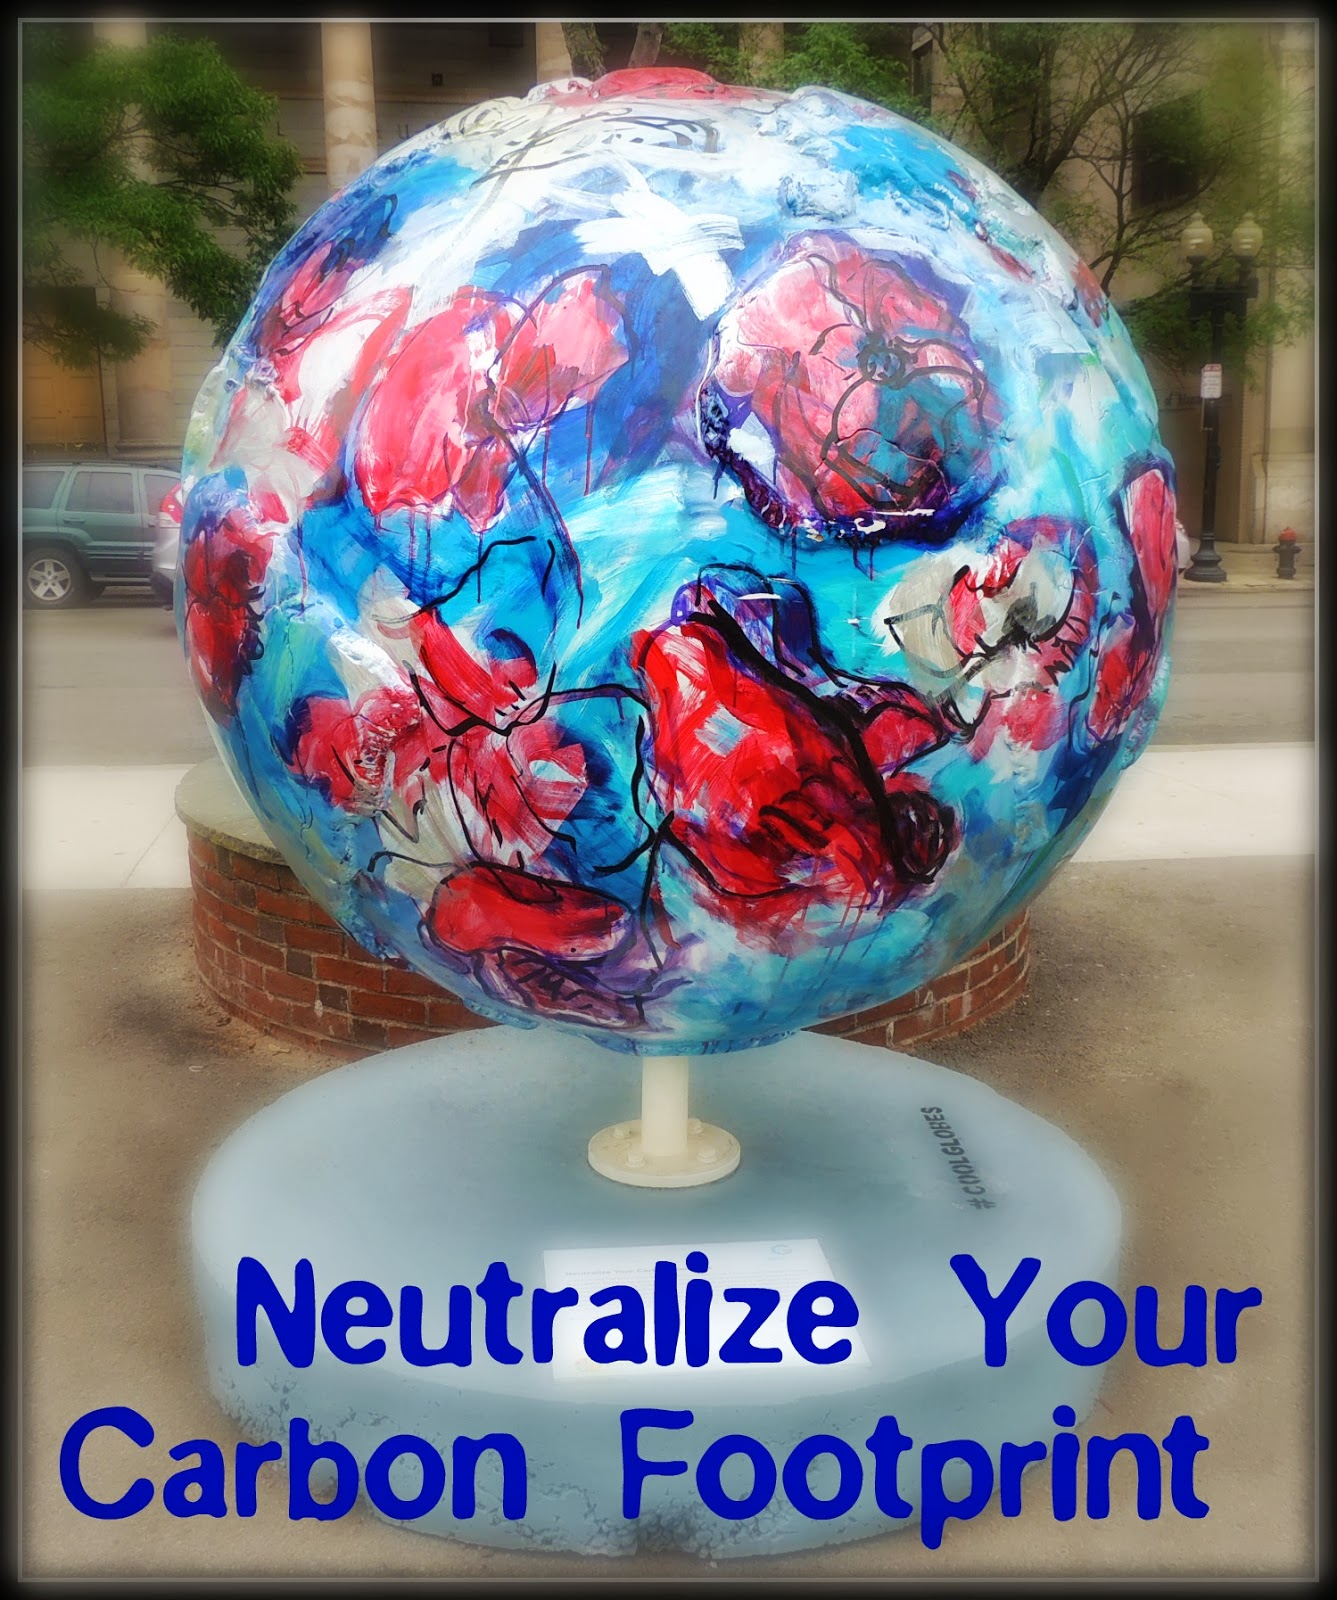 The Cool Globes en Boston: Common I: Neutralize Your Carbon Footprint